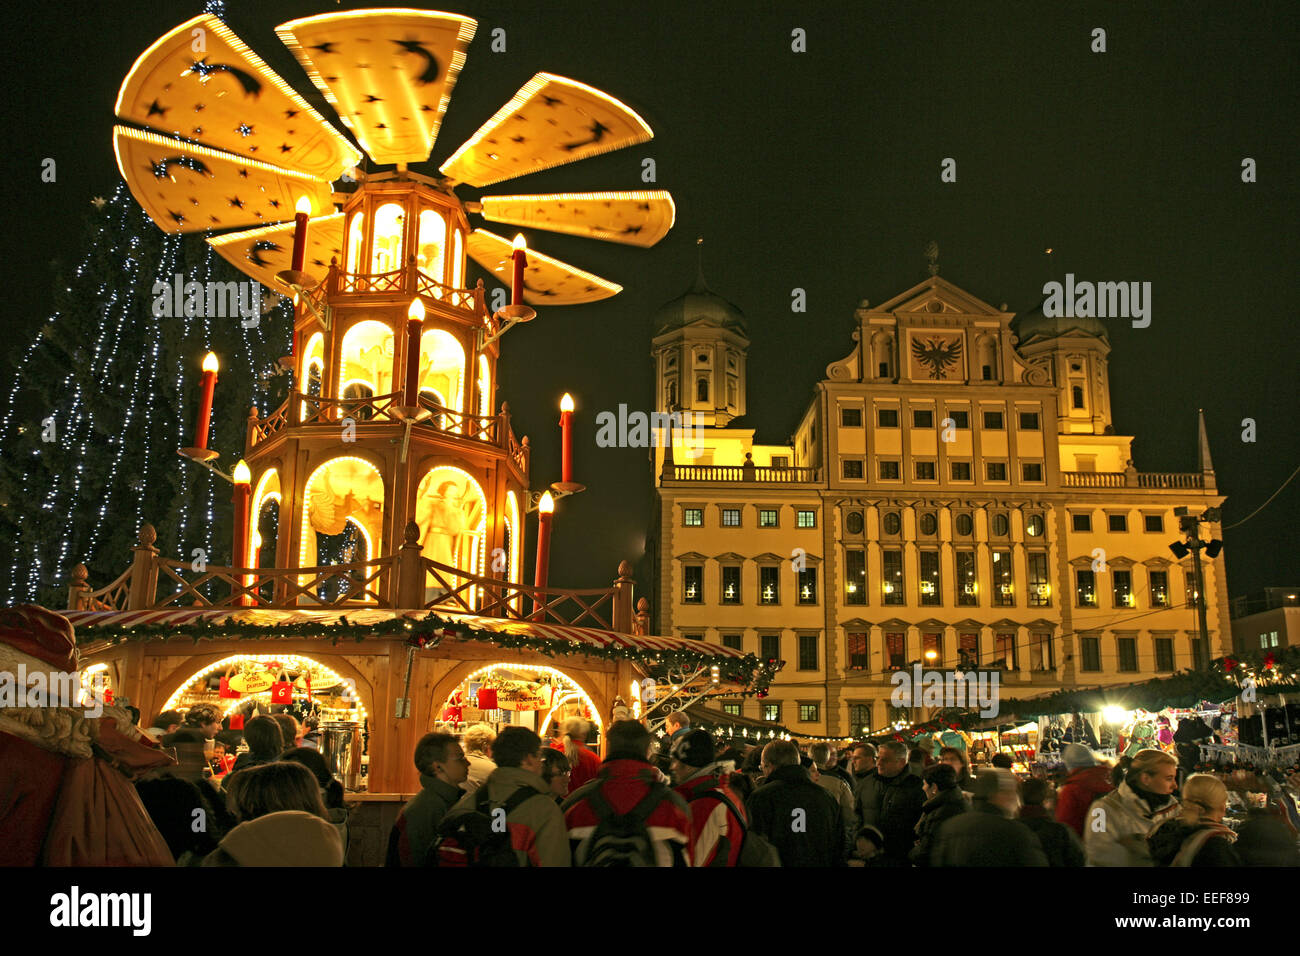 deutschland augsburg rathausplatz weihnachtsmarkt abend bayern stock photo 77782469 alamy. Black Bedroom Furniture Sets. Home Design Ideas